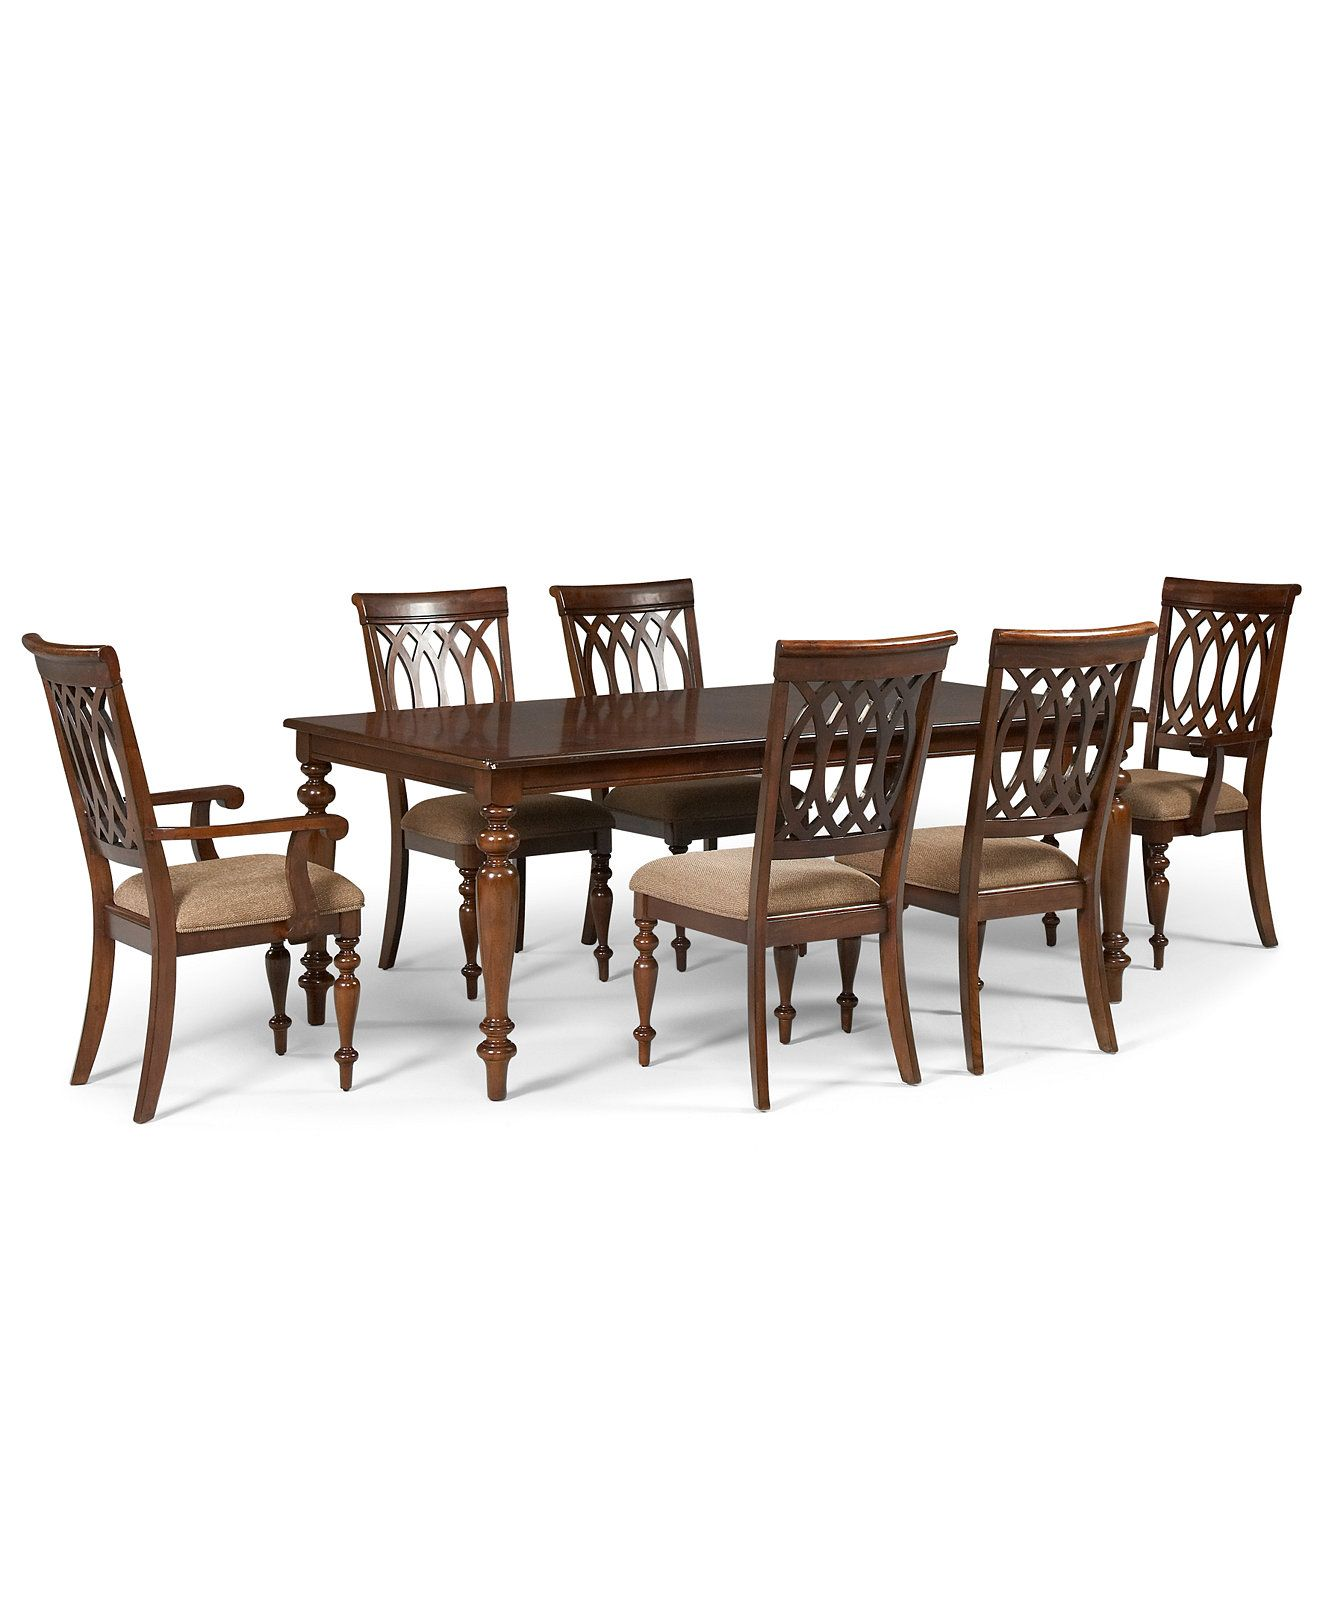 Crestwood Dining Room Furniture 7 Piece Set Dining Table 4 Side Entrancing Macys Dining Room Chairs Design Inspiration